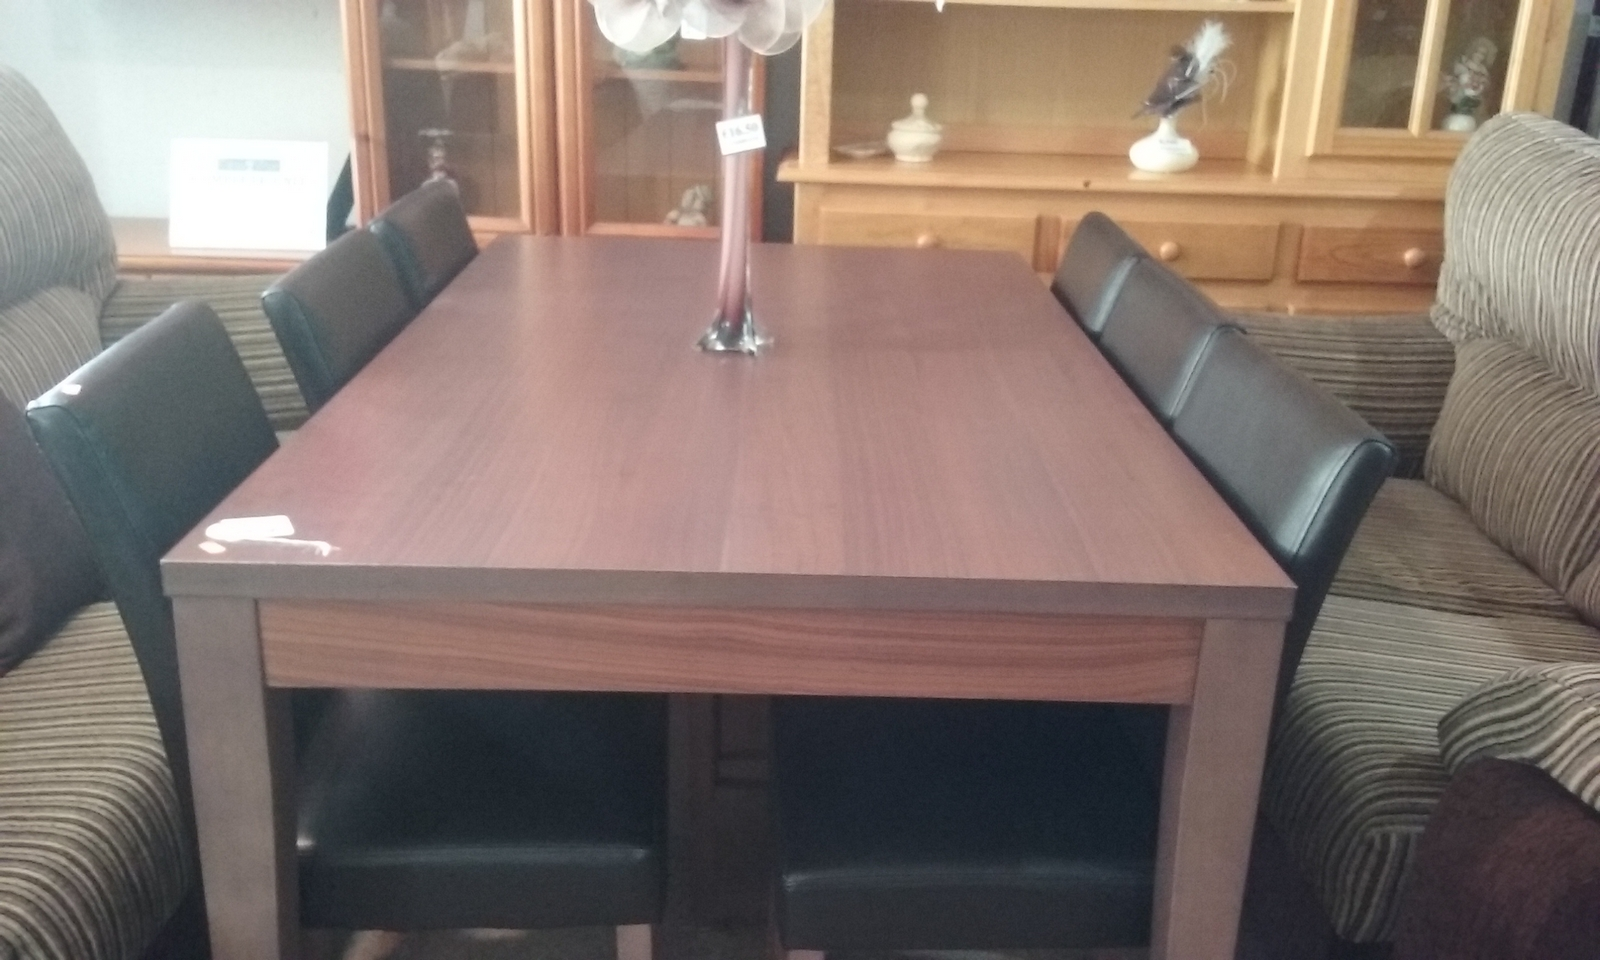 Second Hand Furniture Table And 6 Chairs Sold For Sale Torrevieja Spain